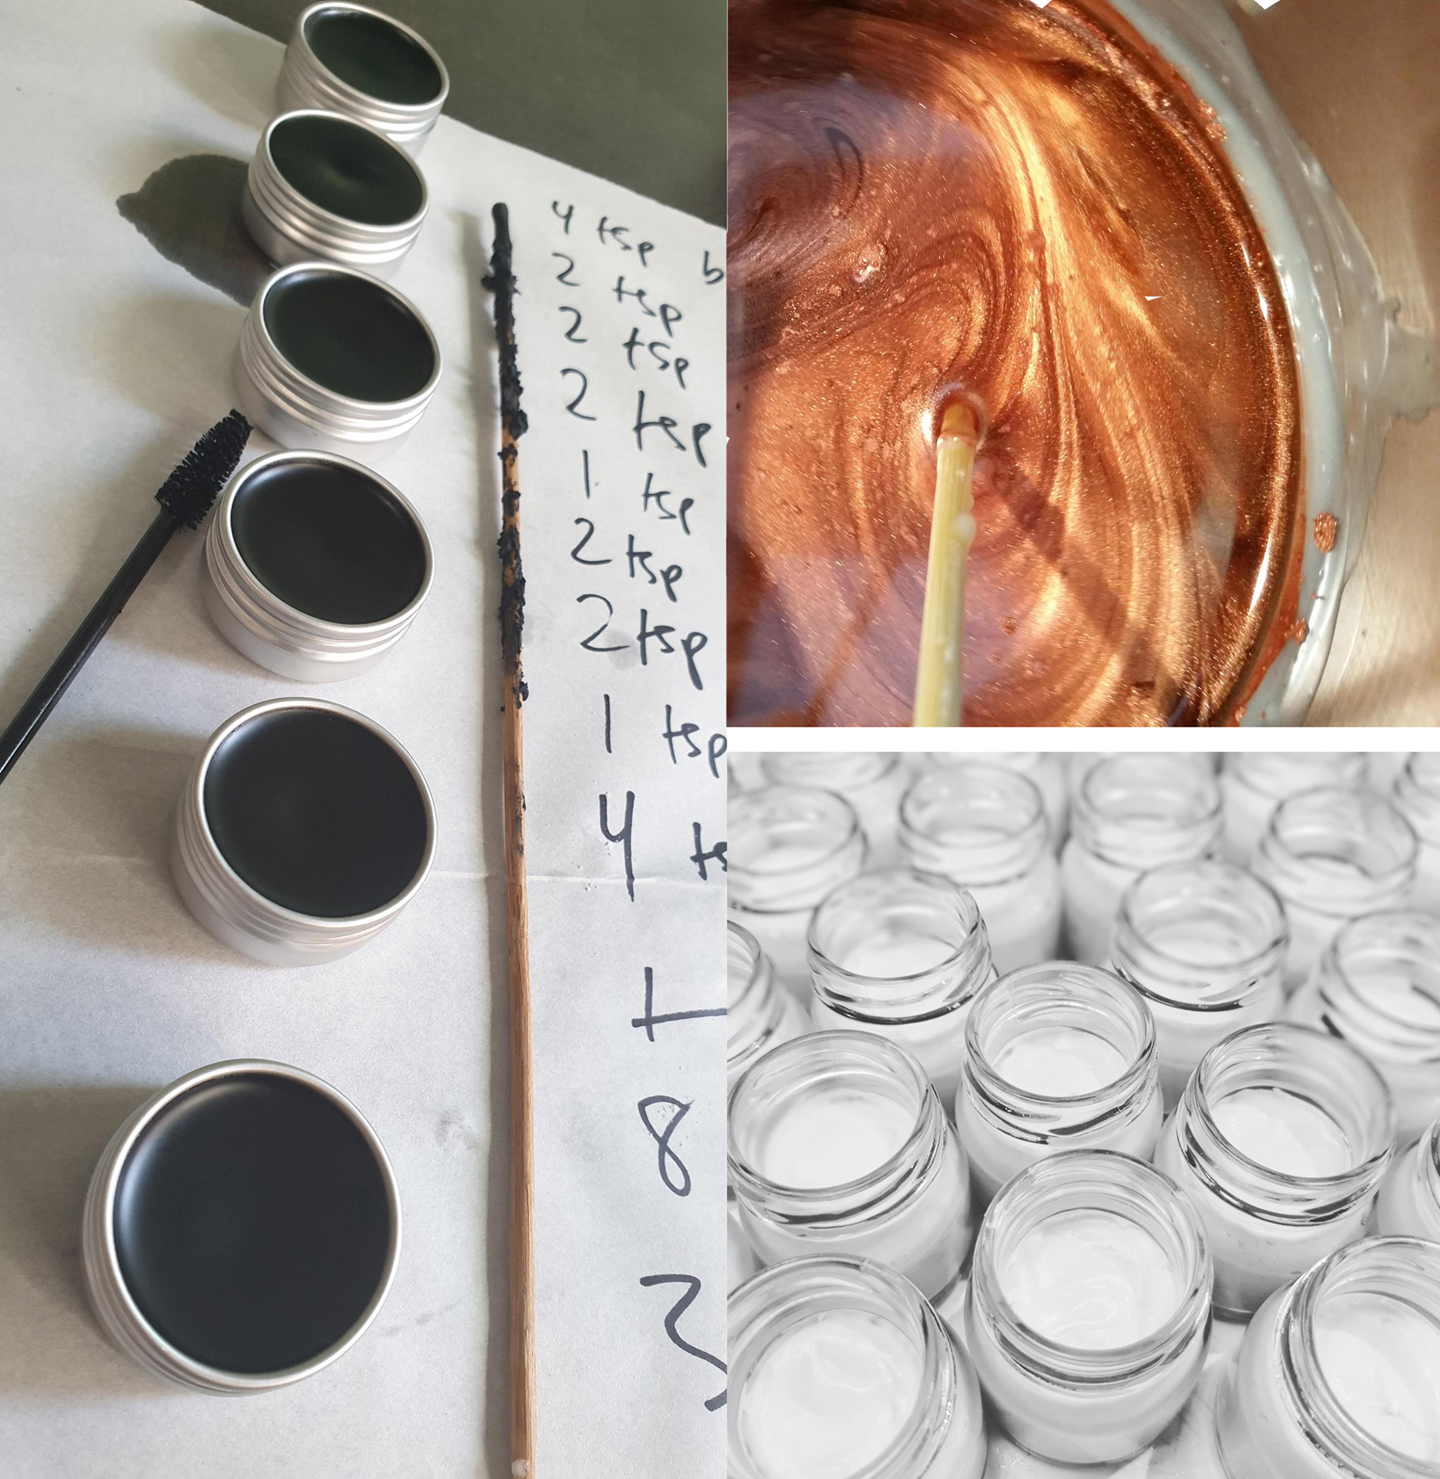 Hand measuring, mixing and pouring handmade skincare concoctions